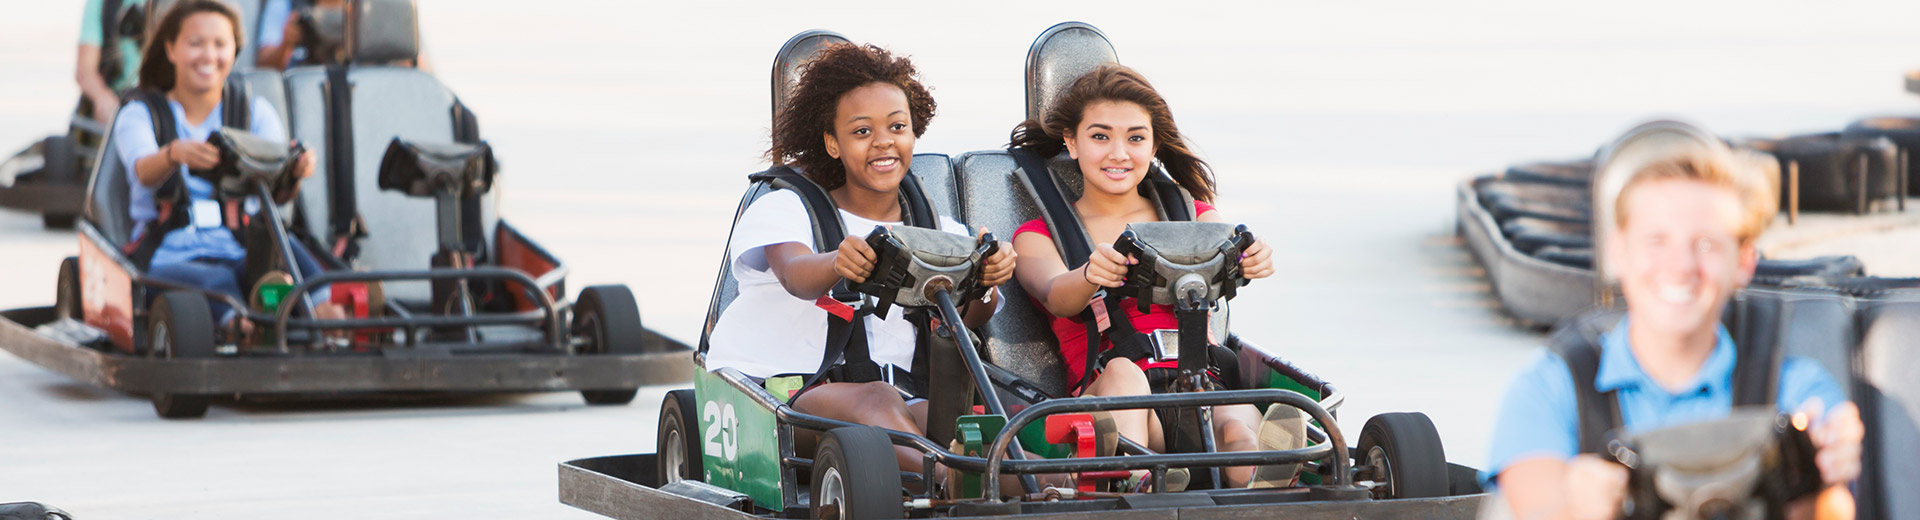 Go Karts | Adventure Landing Family Entertainment Centers & Water Parks